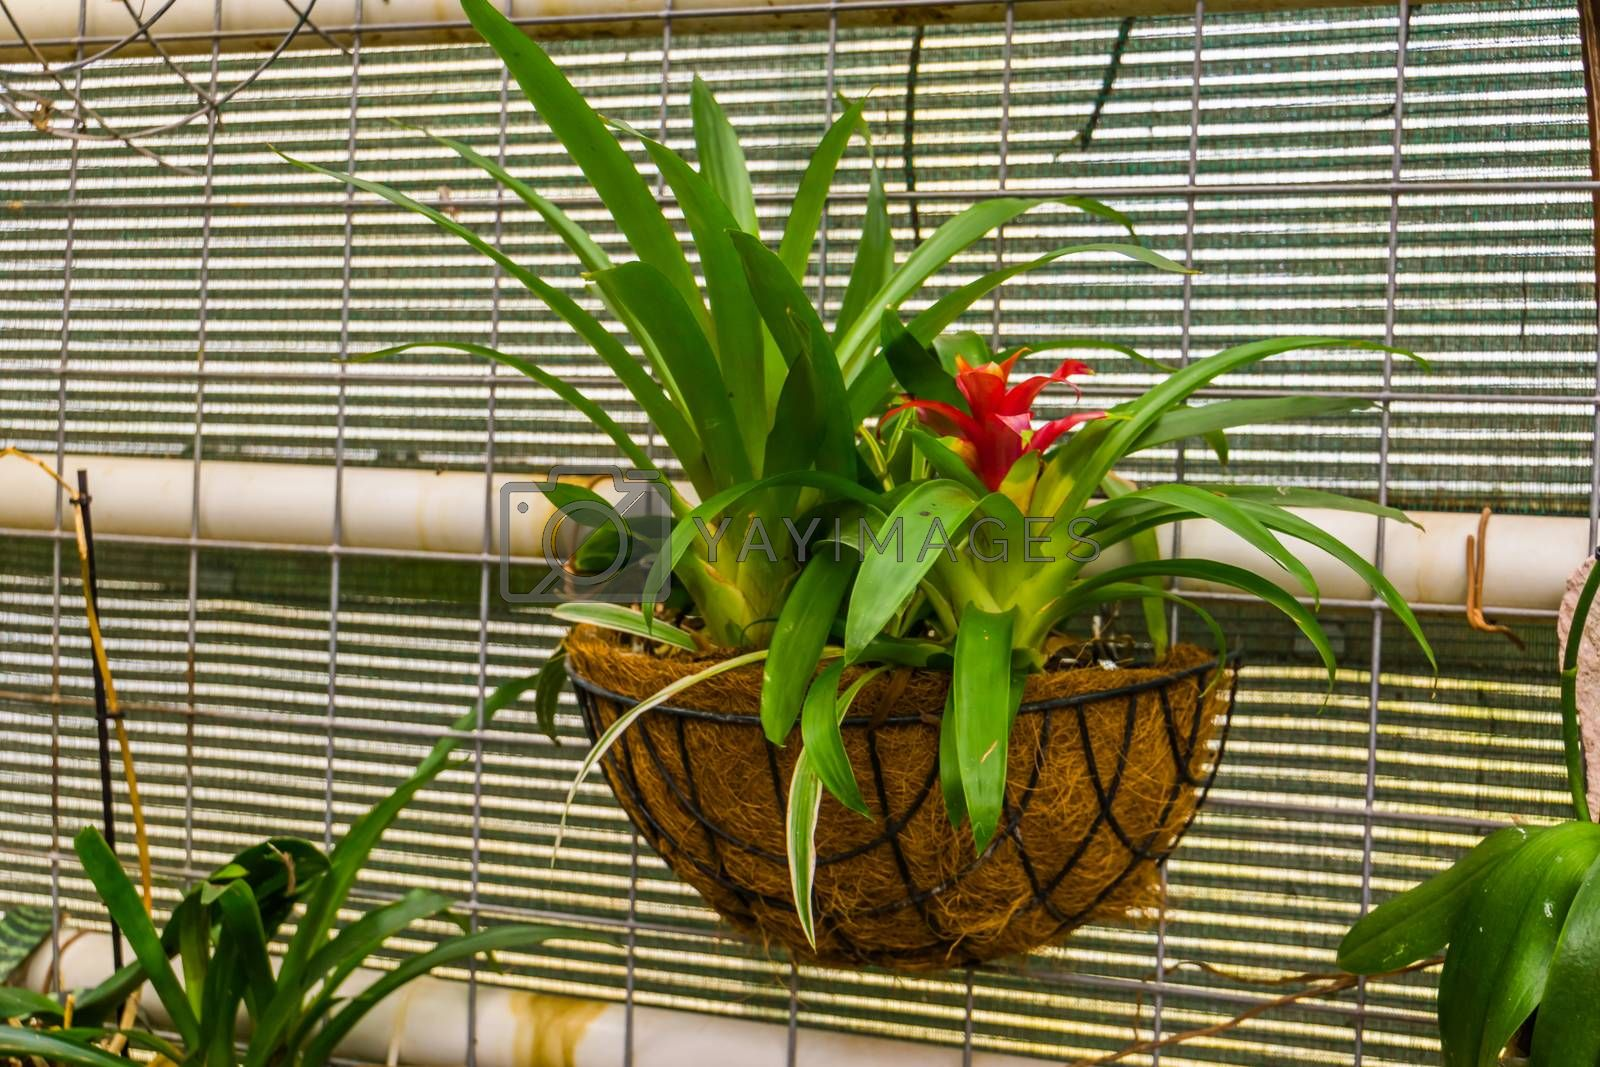 red tufted air plant in a flower basket, popular tropical decorative plant from America by charlotte Bleijenberg